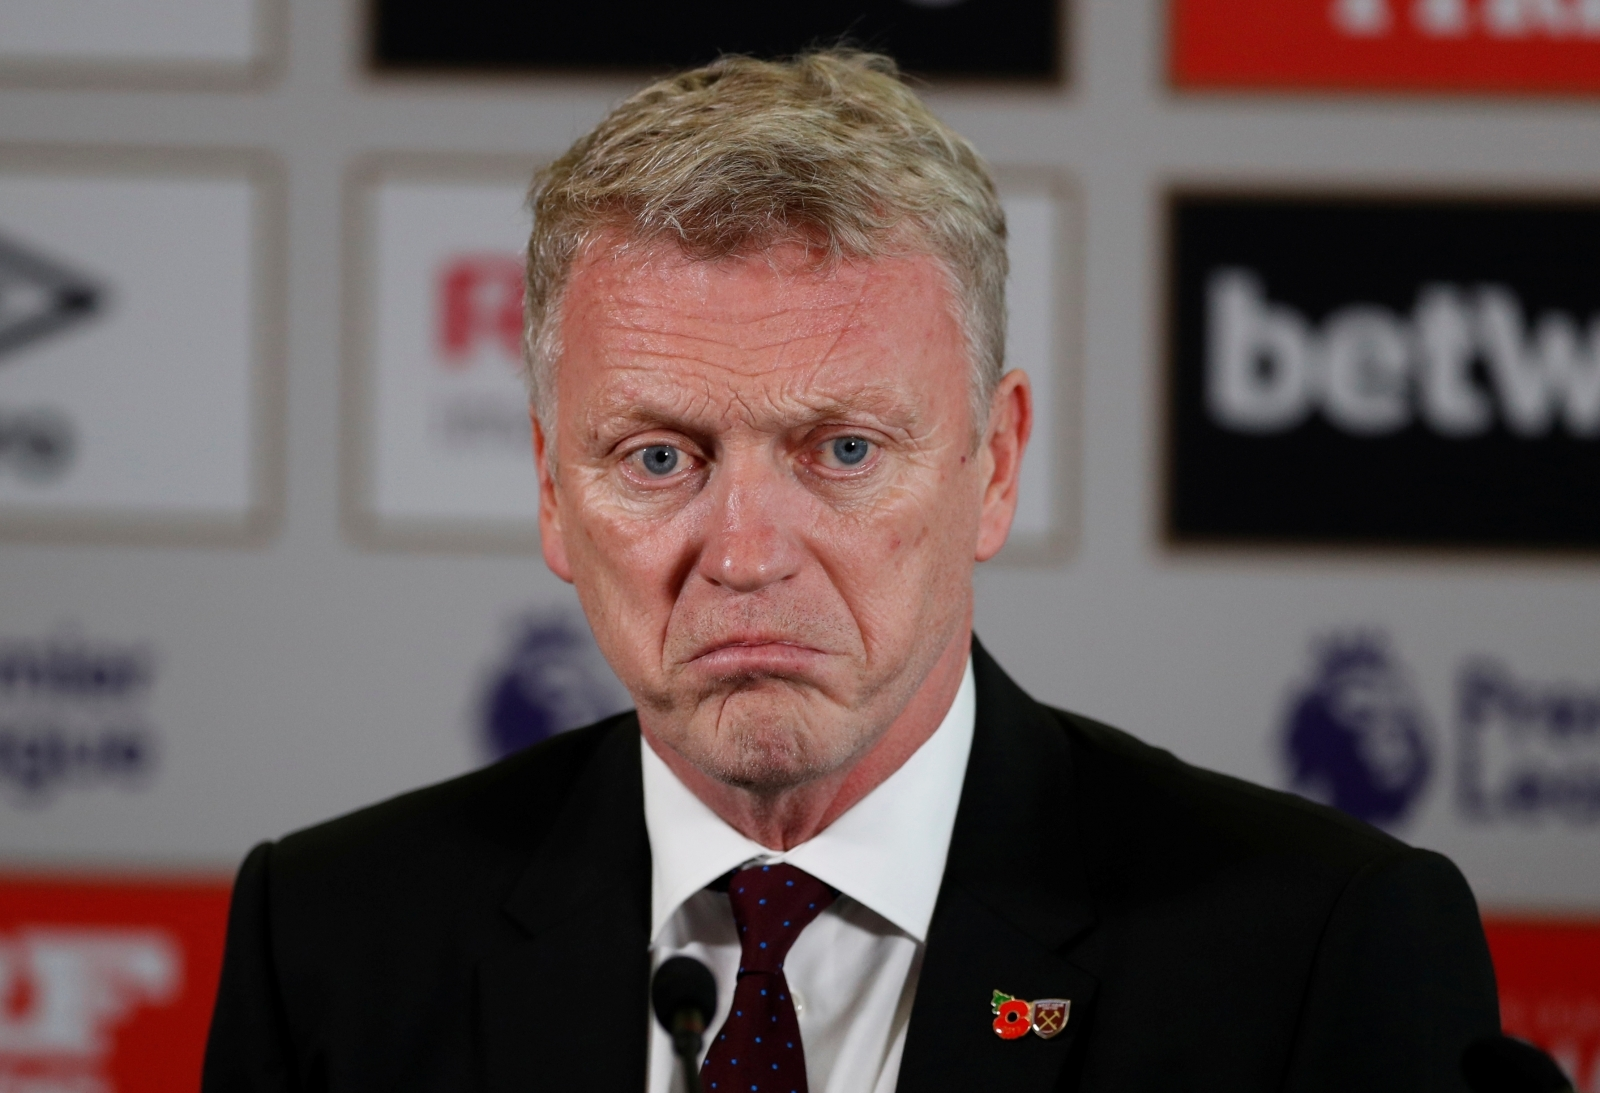 David Moyes: 'My focus is on the future'